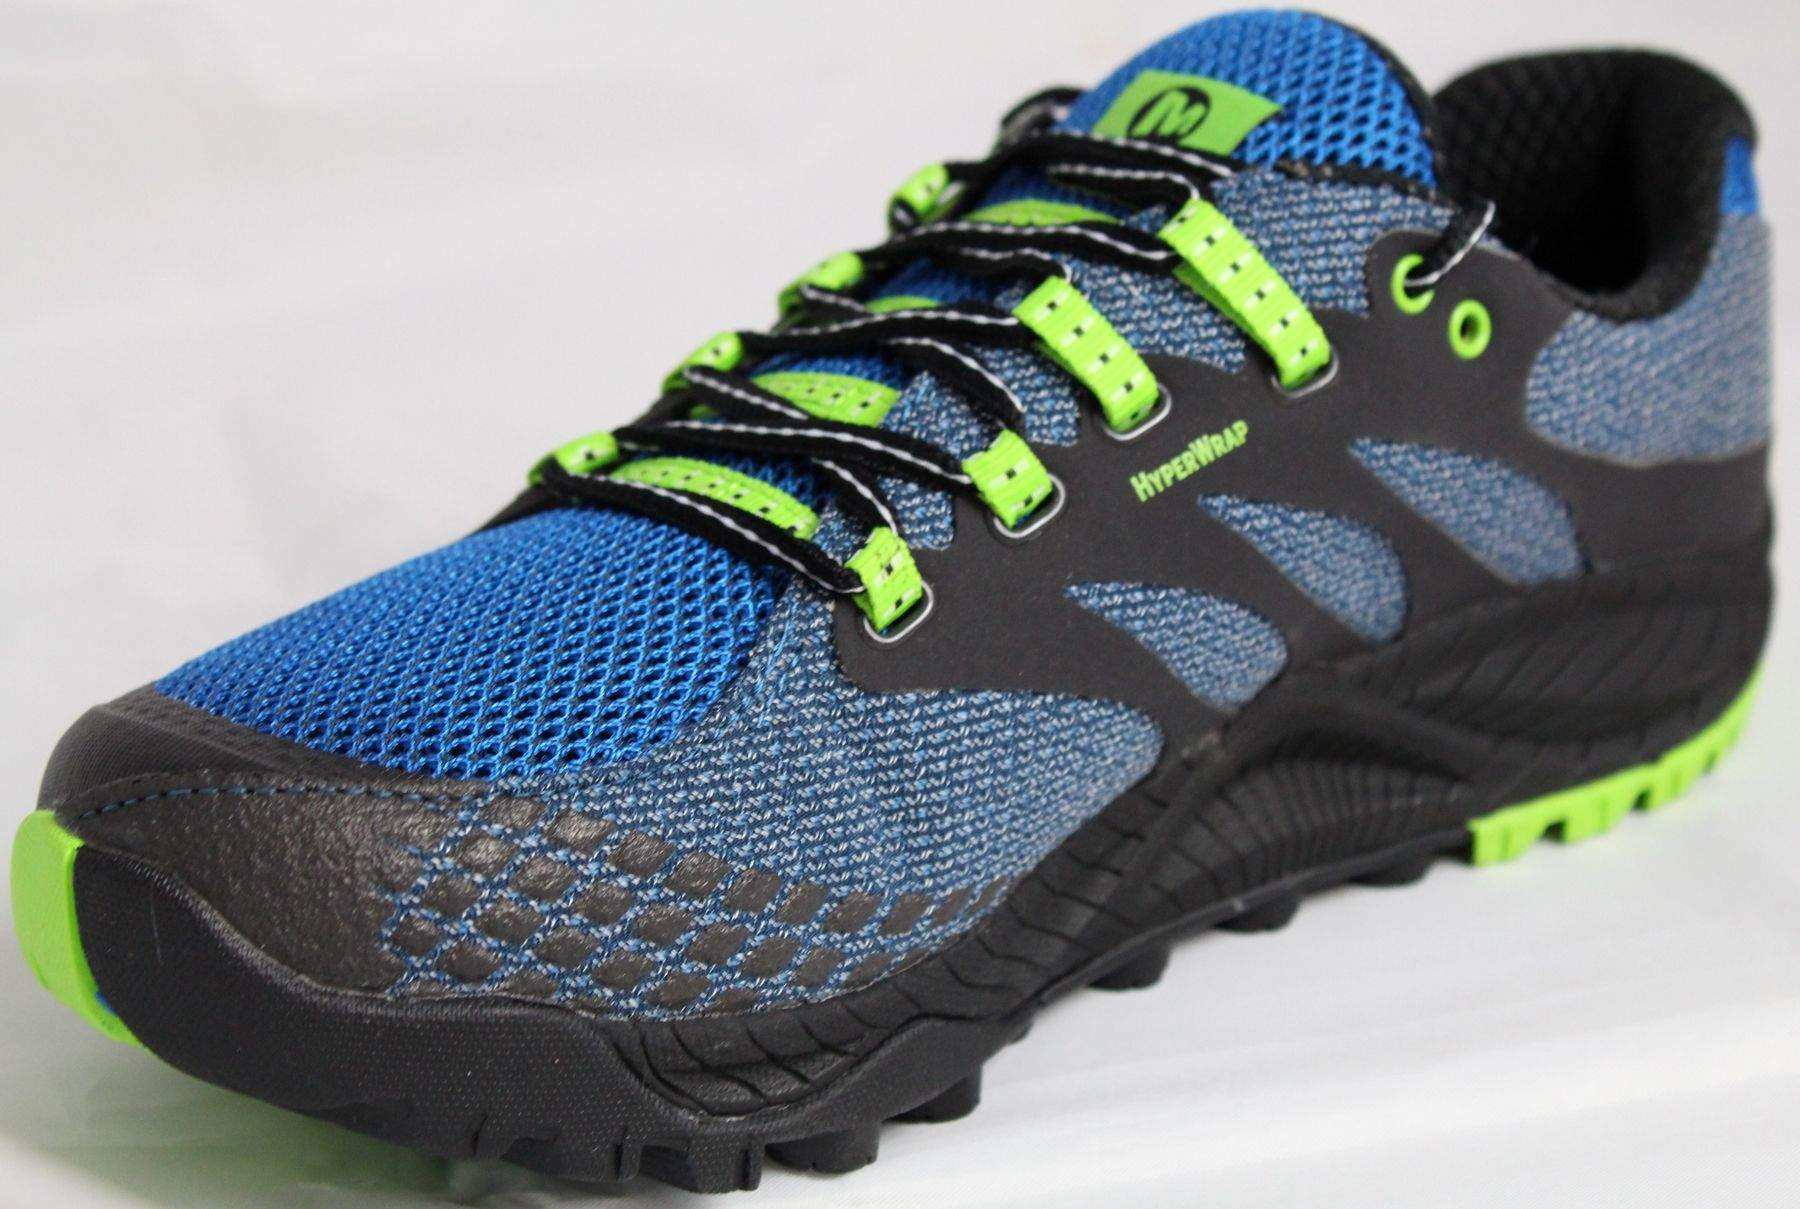 c6bef097c4b Merrell All Out Charge  análisis y opinión - Foroatletismo.com